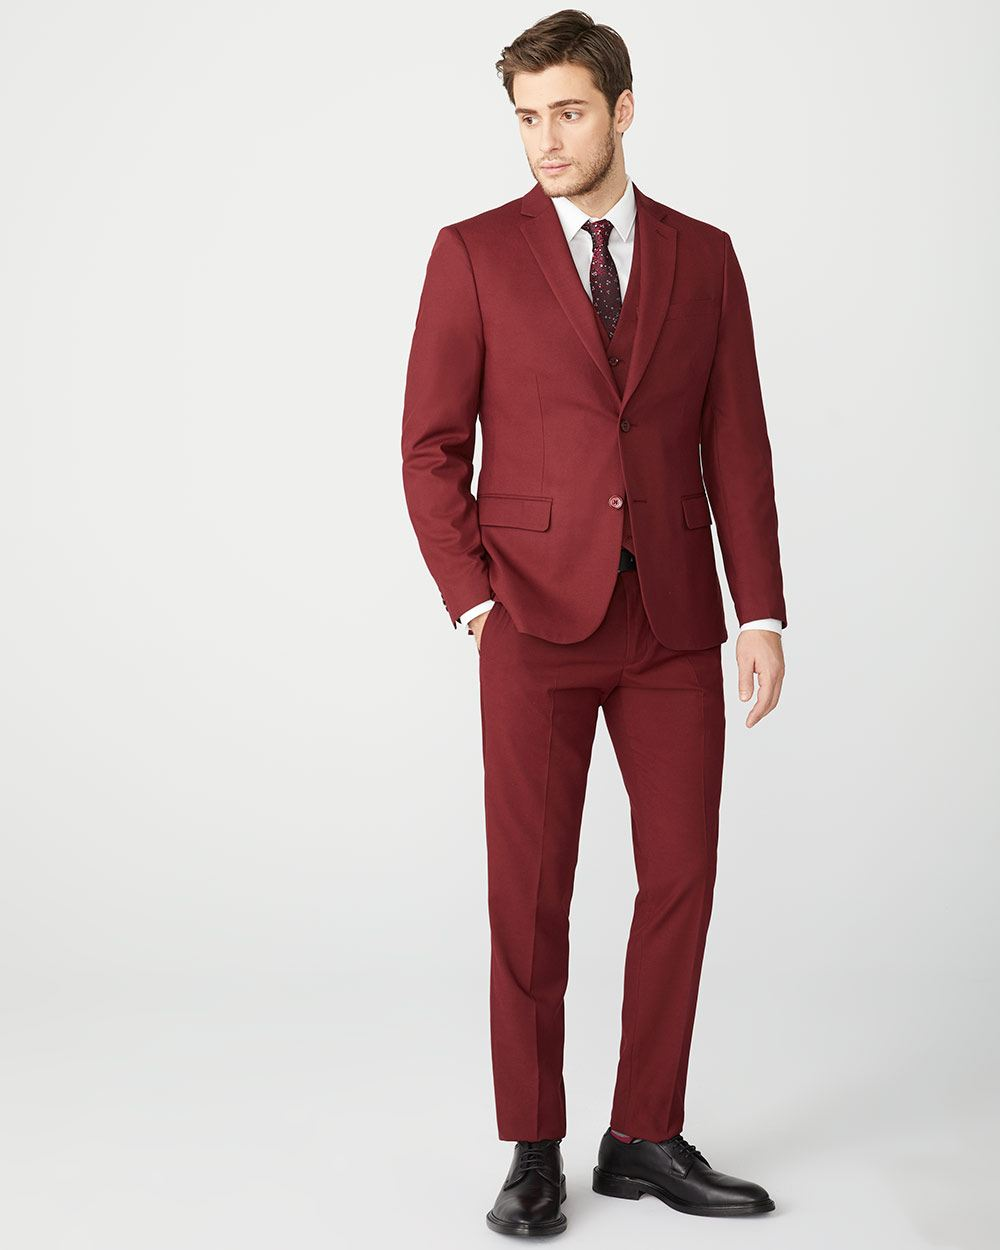 Slim Fit Marsala Red suit pant